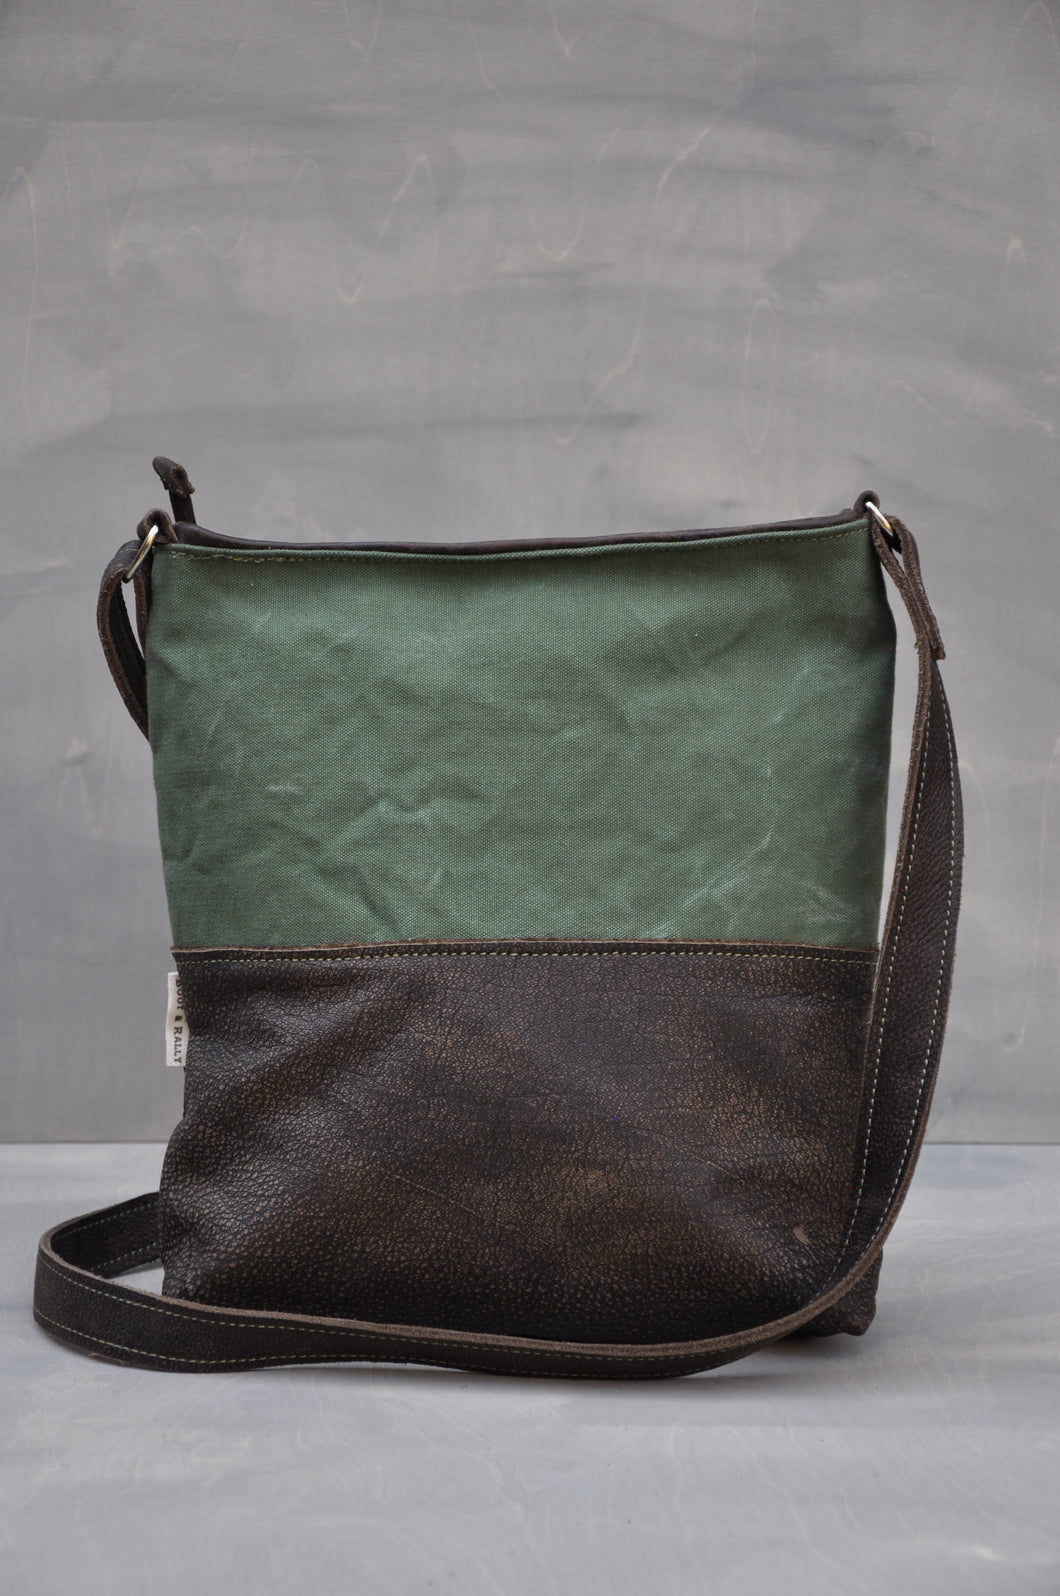 Vintage Crossbody Bag - Reclaimed Canvas & Leather (Green / Buffed Brown)